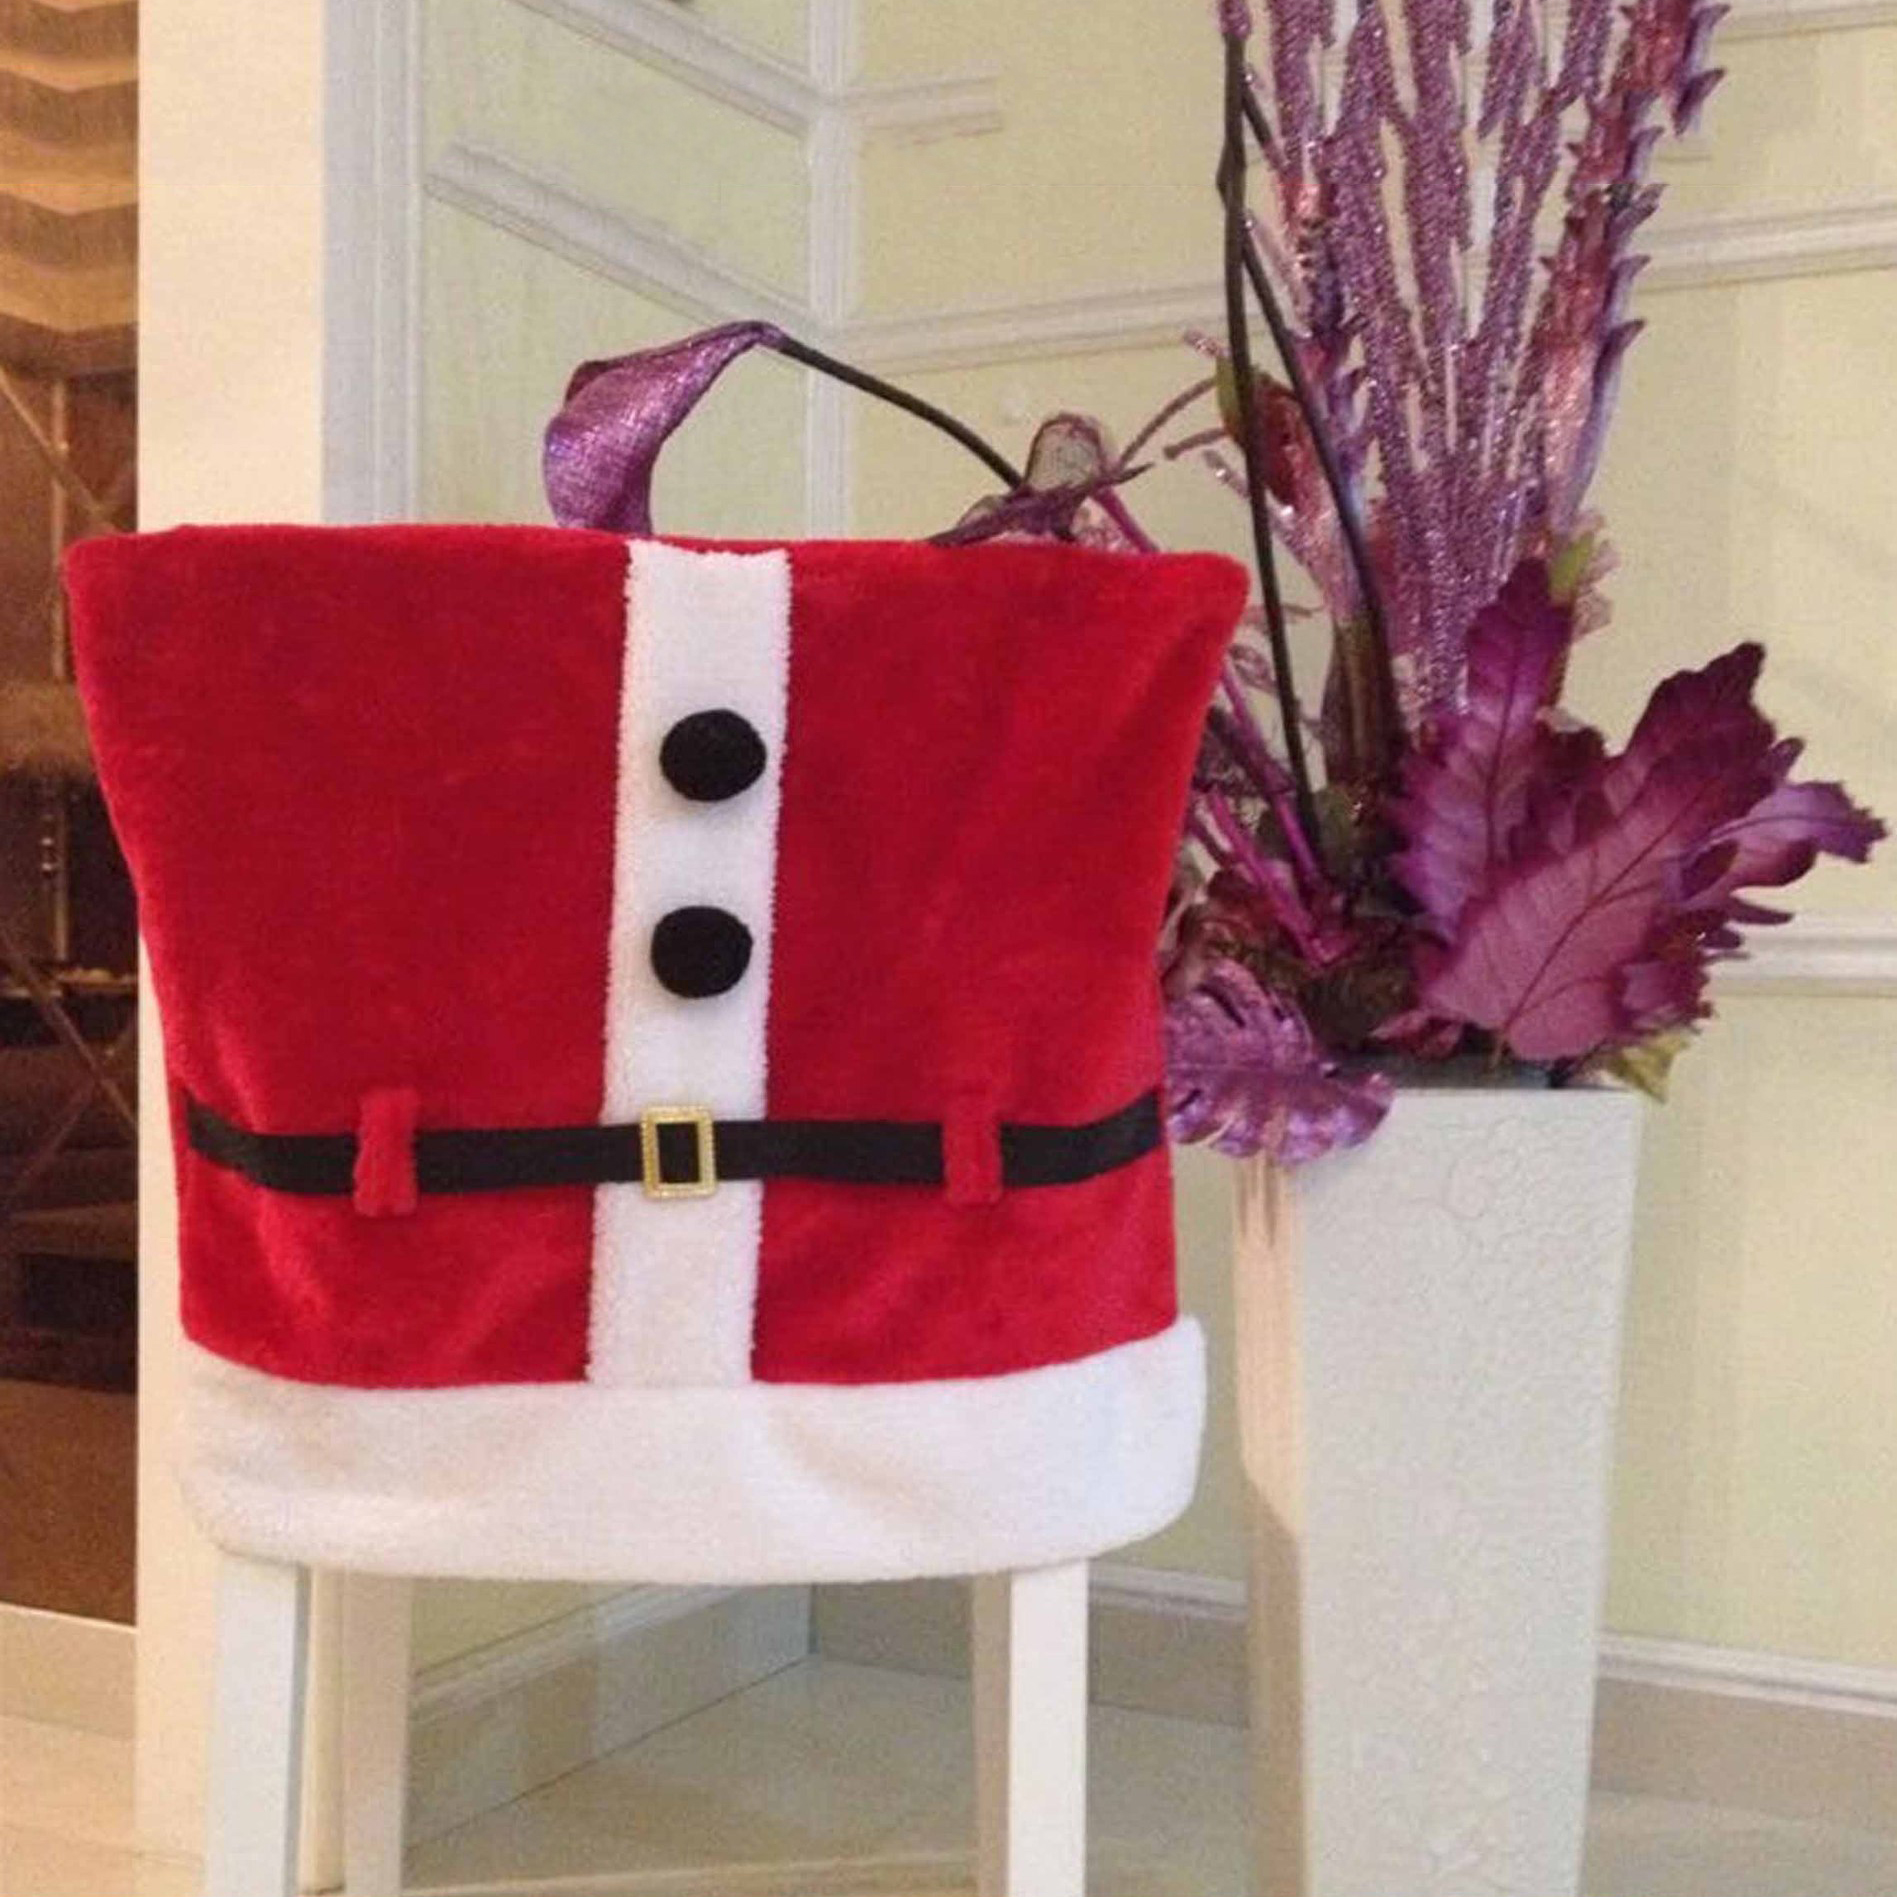 Christmas chair back covers - Christmas Santa With Belt Buckle Red Chair Cover Seat Back Cover For Dining Room Party Decor